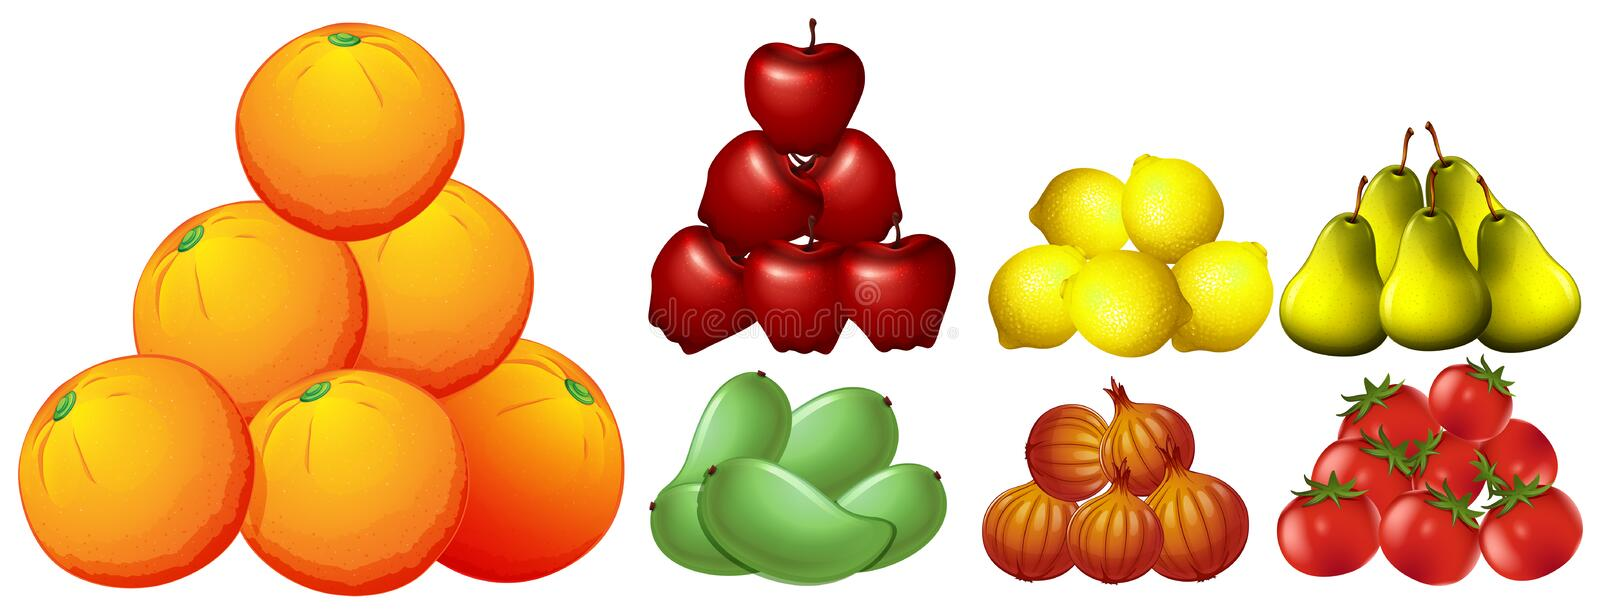 Piles of different kinds of fruits stock illustration